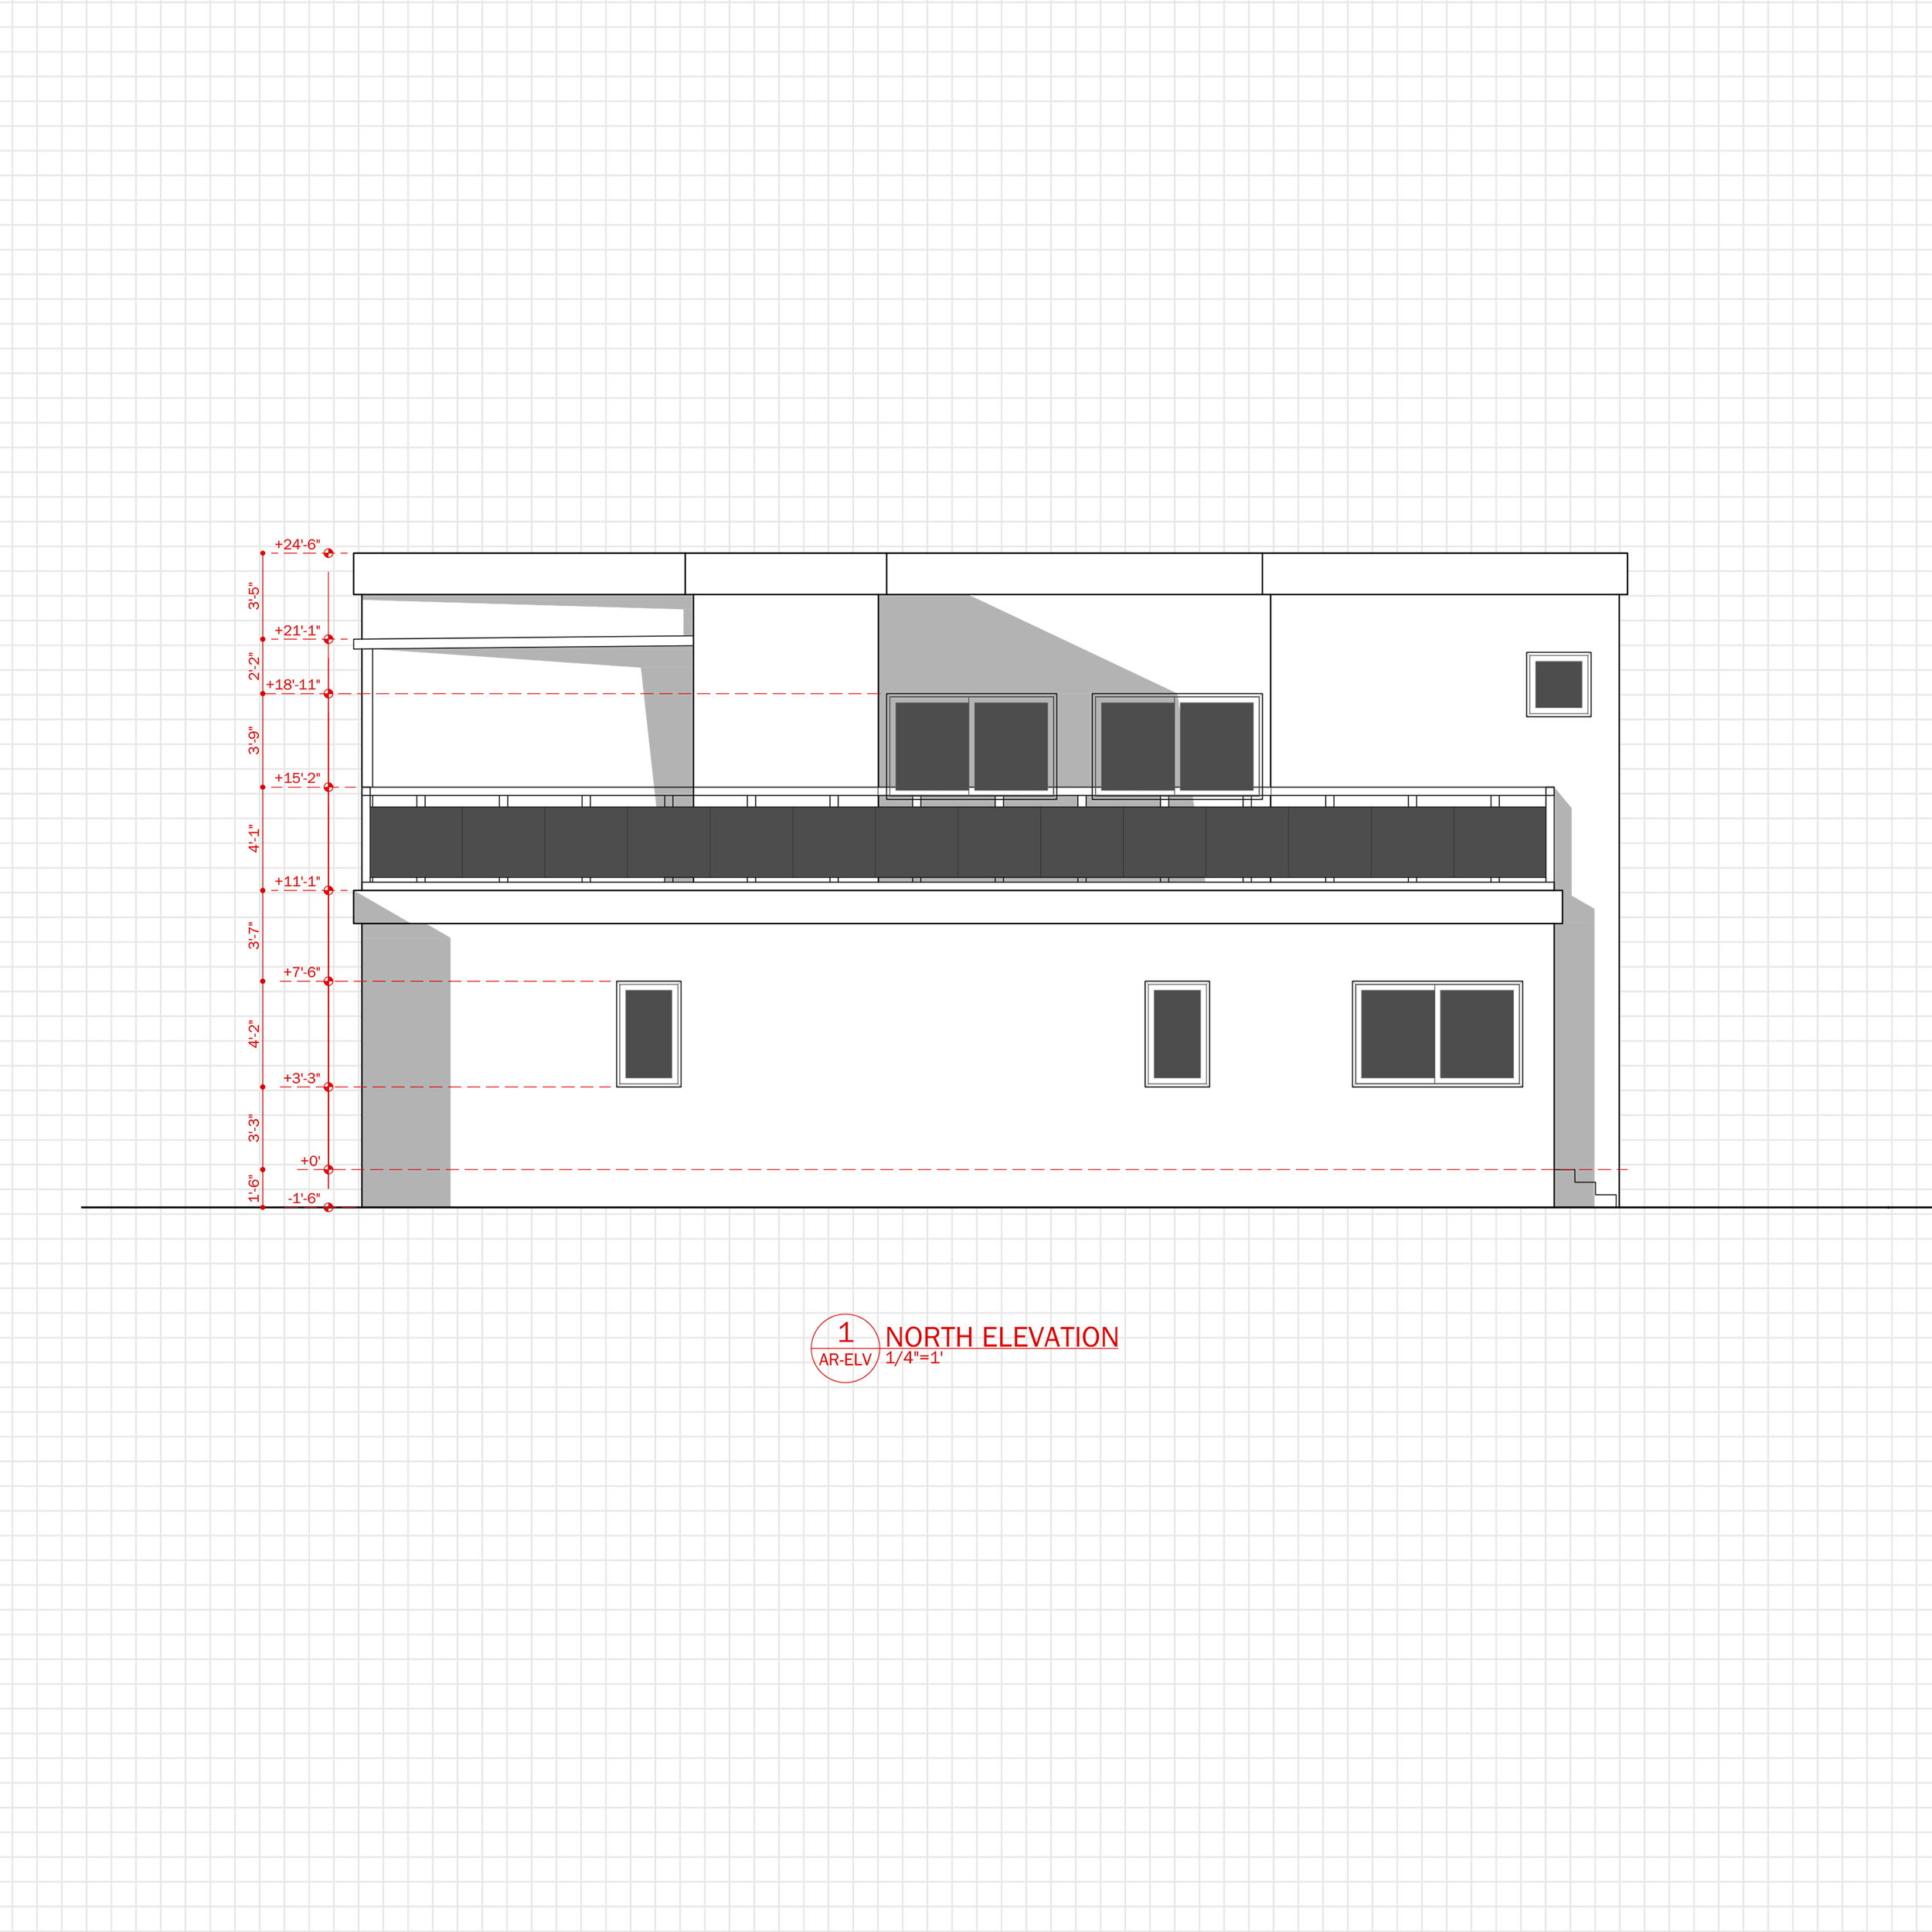 Modern House Office Architecture Plan With Floor Plan Section And Elevation Imperial Units Cad Files Dwg Files Plans And Details